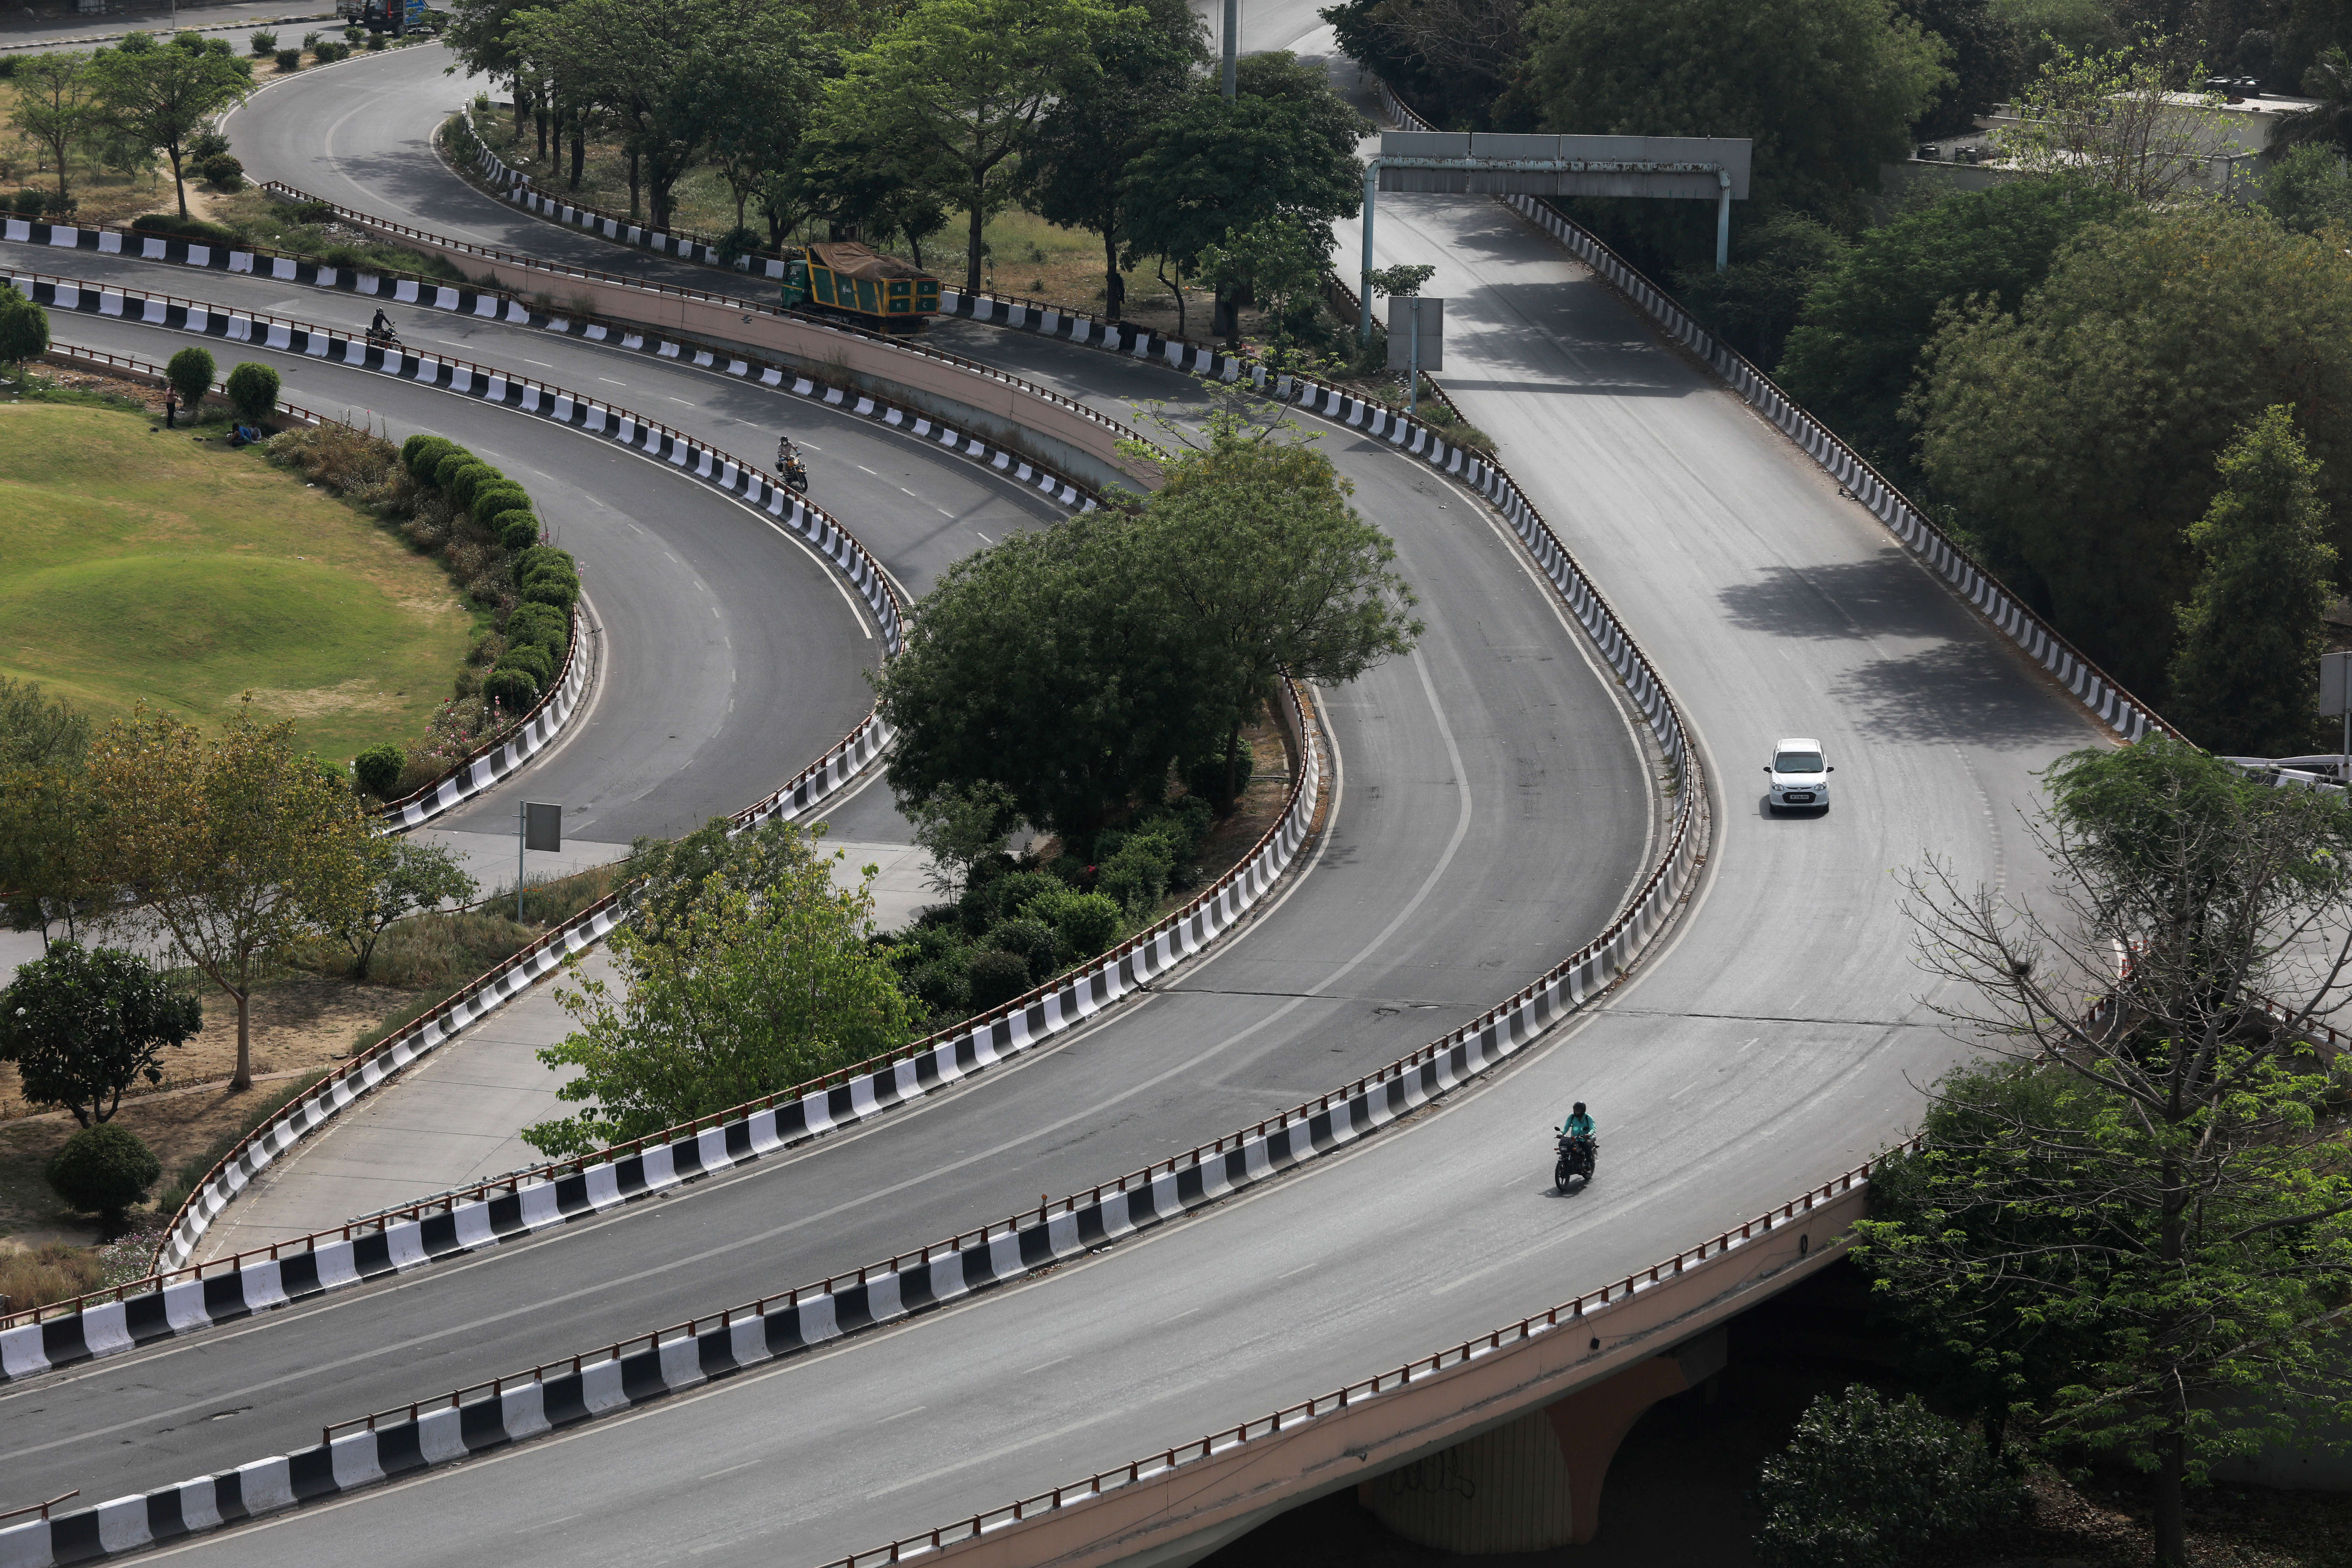 Vehicles drive on a nearly empty road after India extended a nationwide lockdown to slow the spreading of coronavirus disease (COVID-19), in New Delhi, April 14, 2020. REUTERS/Anushree Fadnavis - RC2D4G9TD3CY